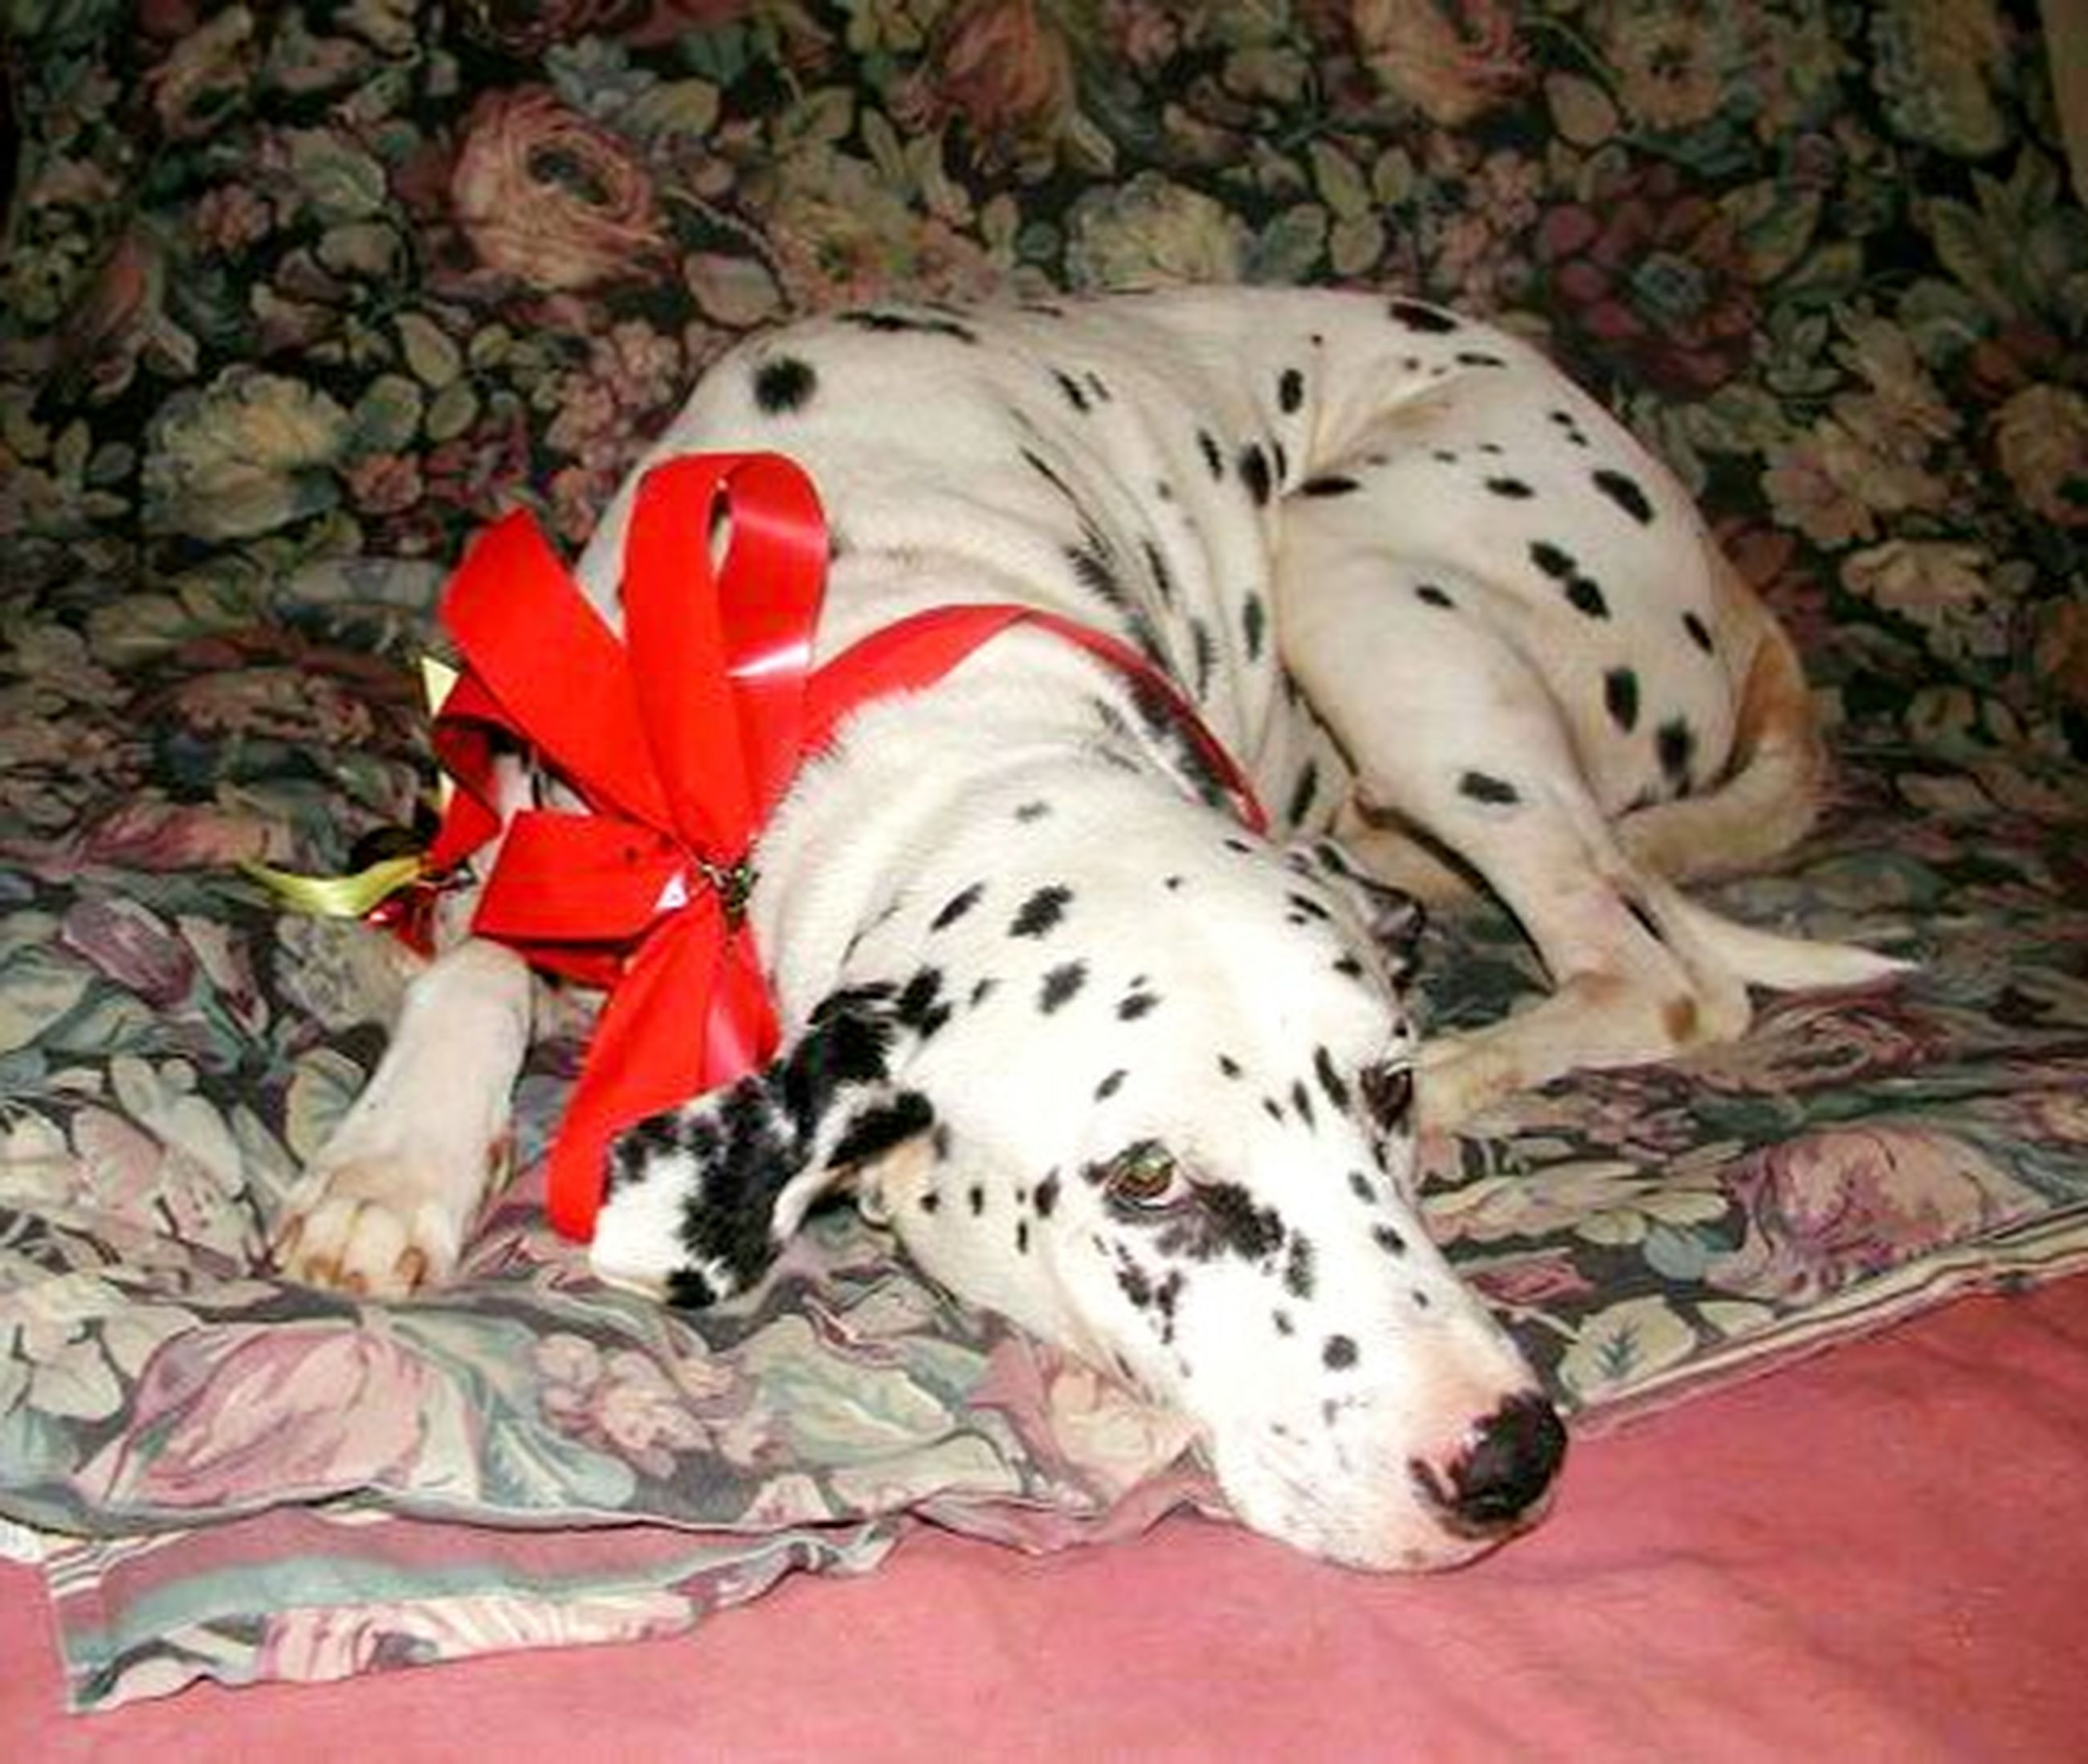 mammal, animal themes, pets, one animal, animal, domestic animals, domestic, lying down, dog, canine, dalmatian dog, sleeping, indoors, spotted, relaxation, red, no people, high angle view, full length, pattern, floral pattern, purebred dog